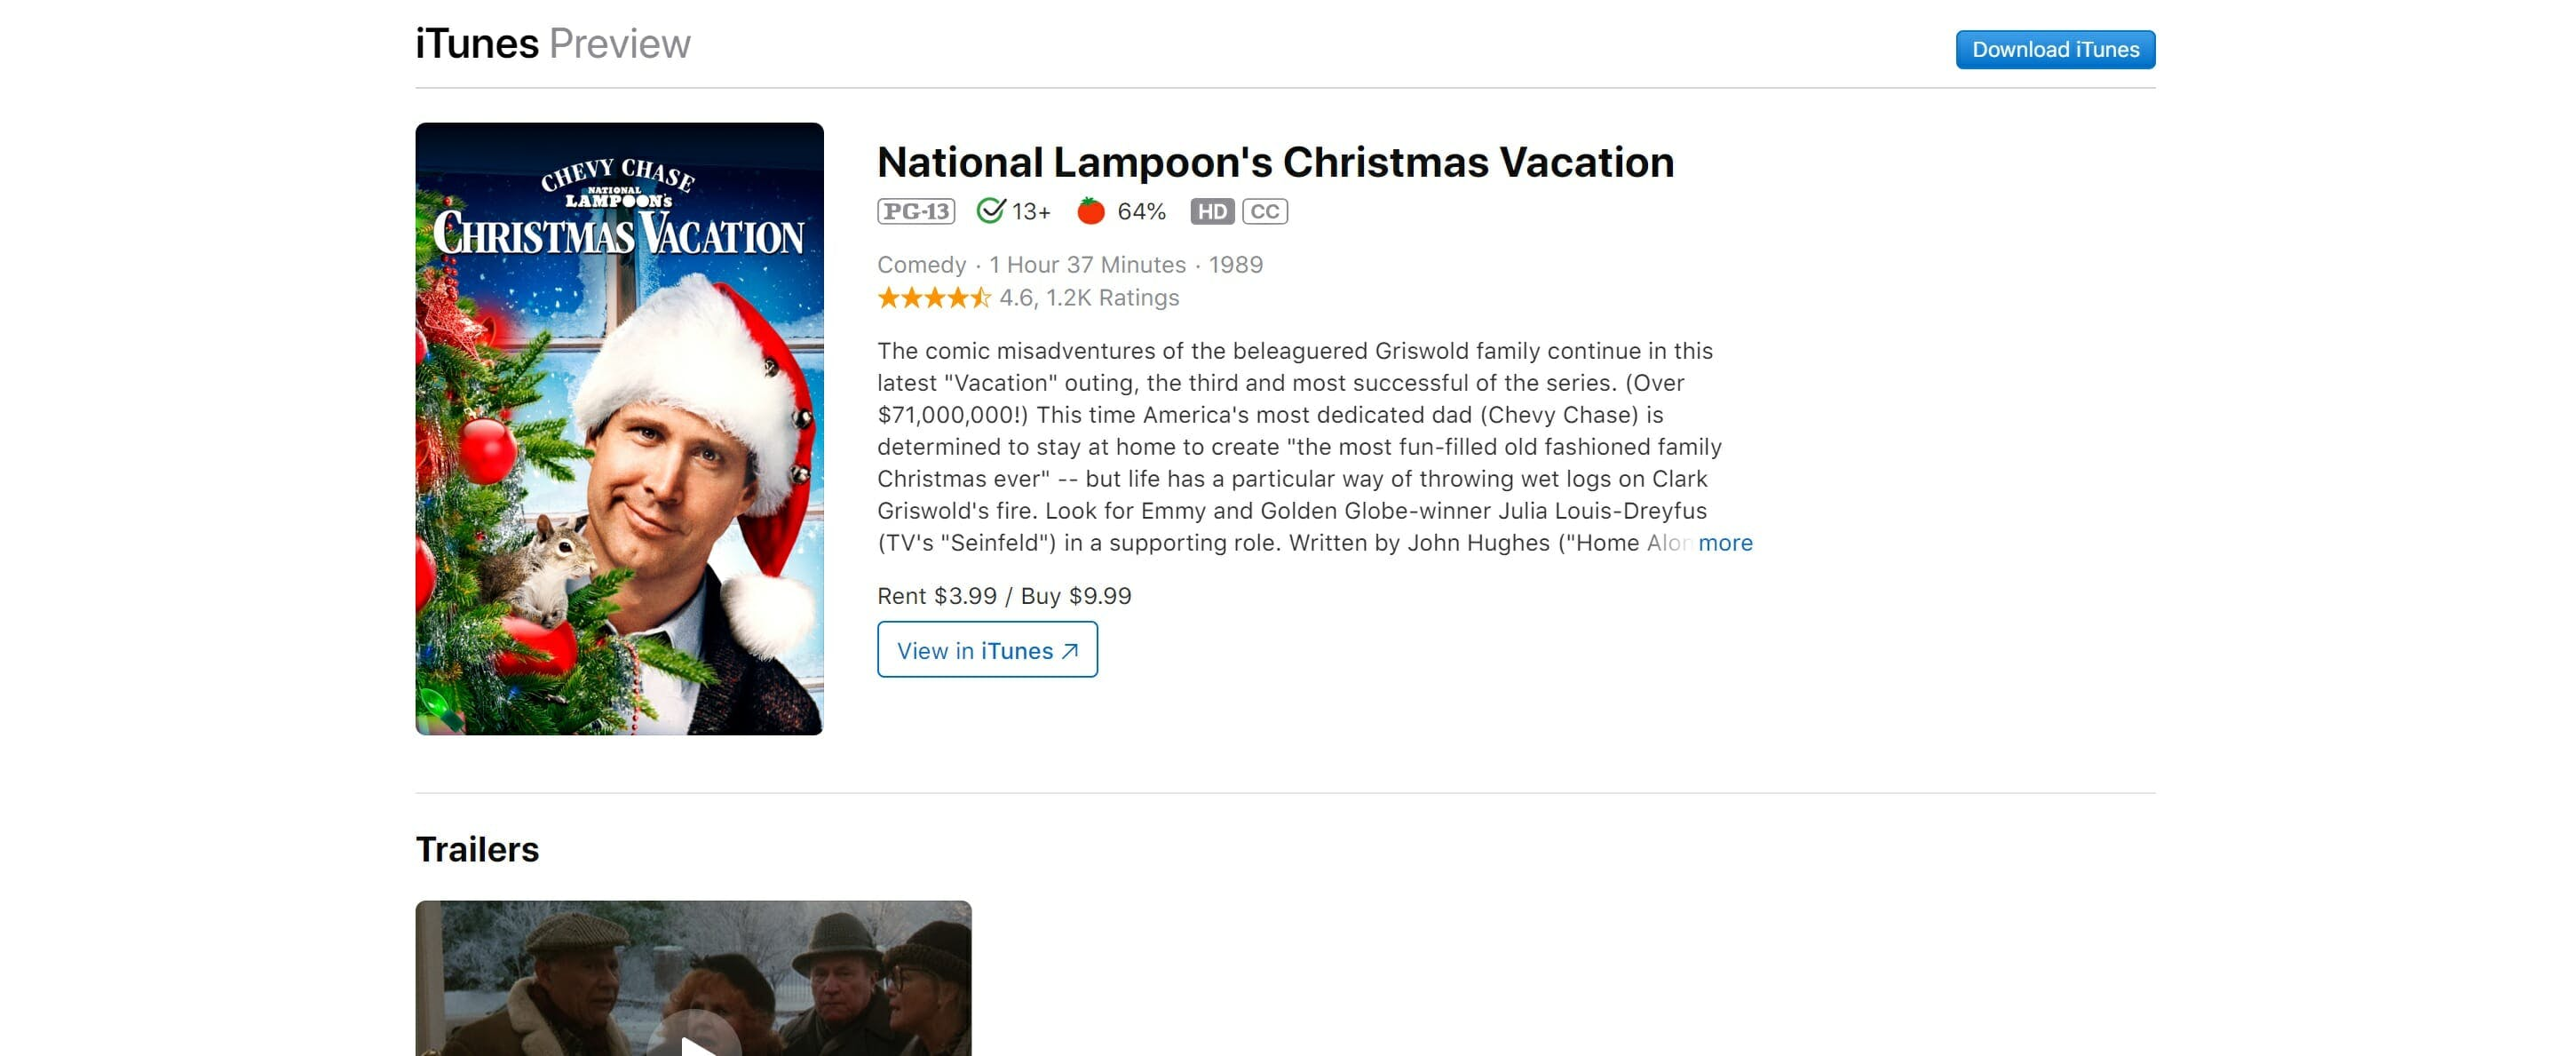 watch christmas vacation online free - itunes